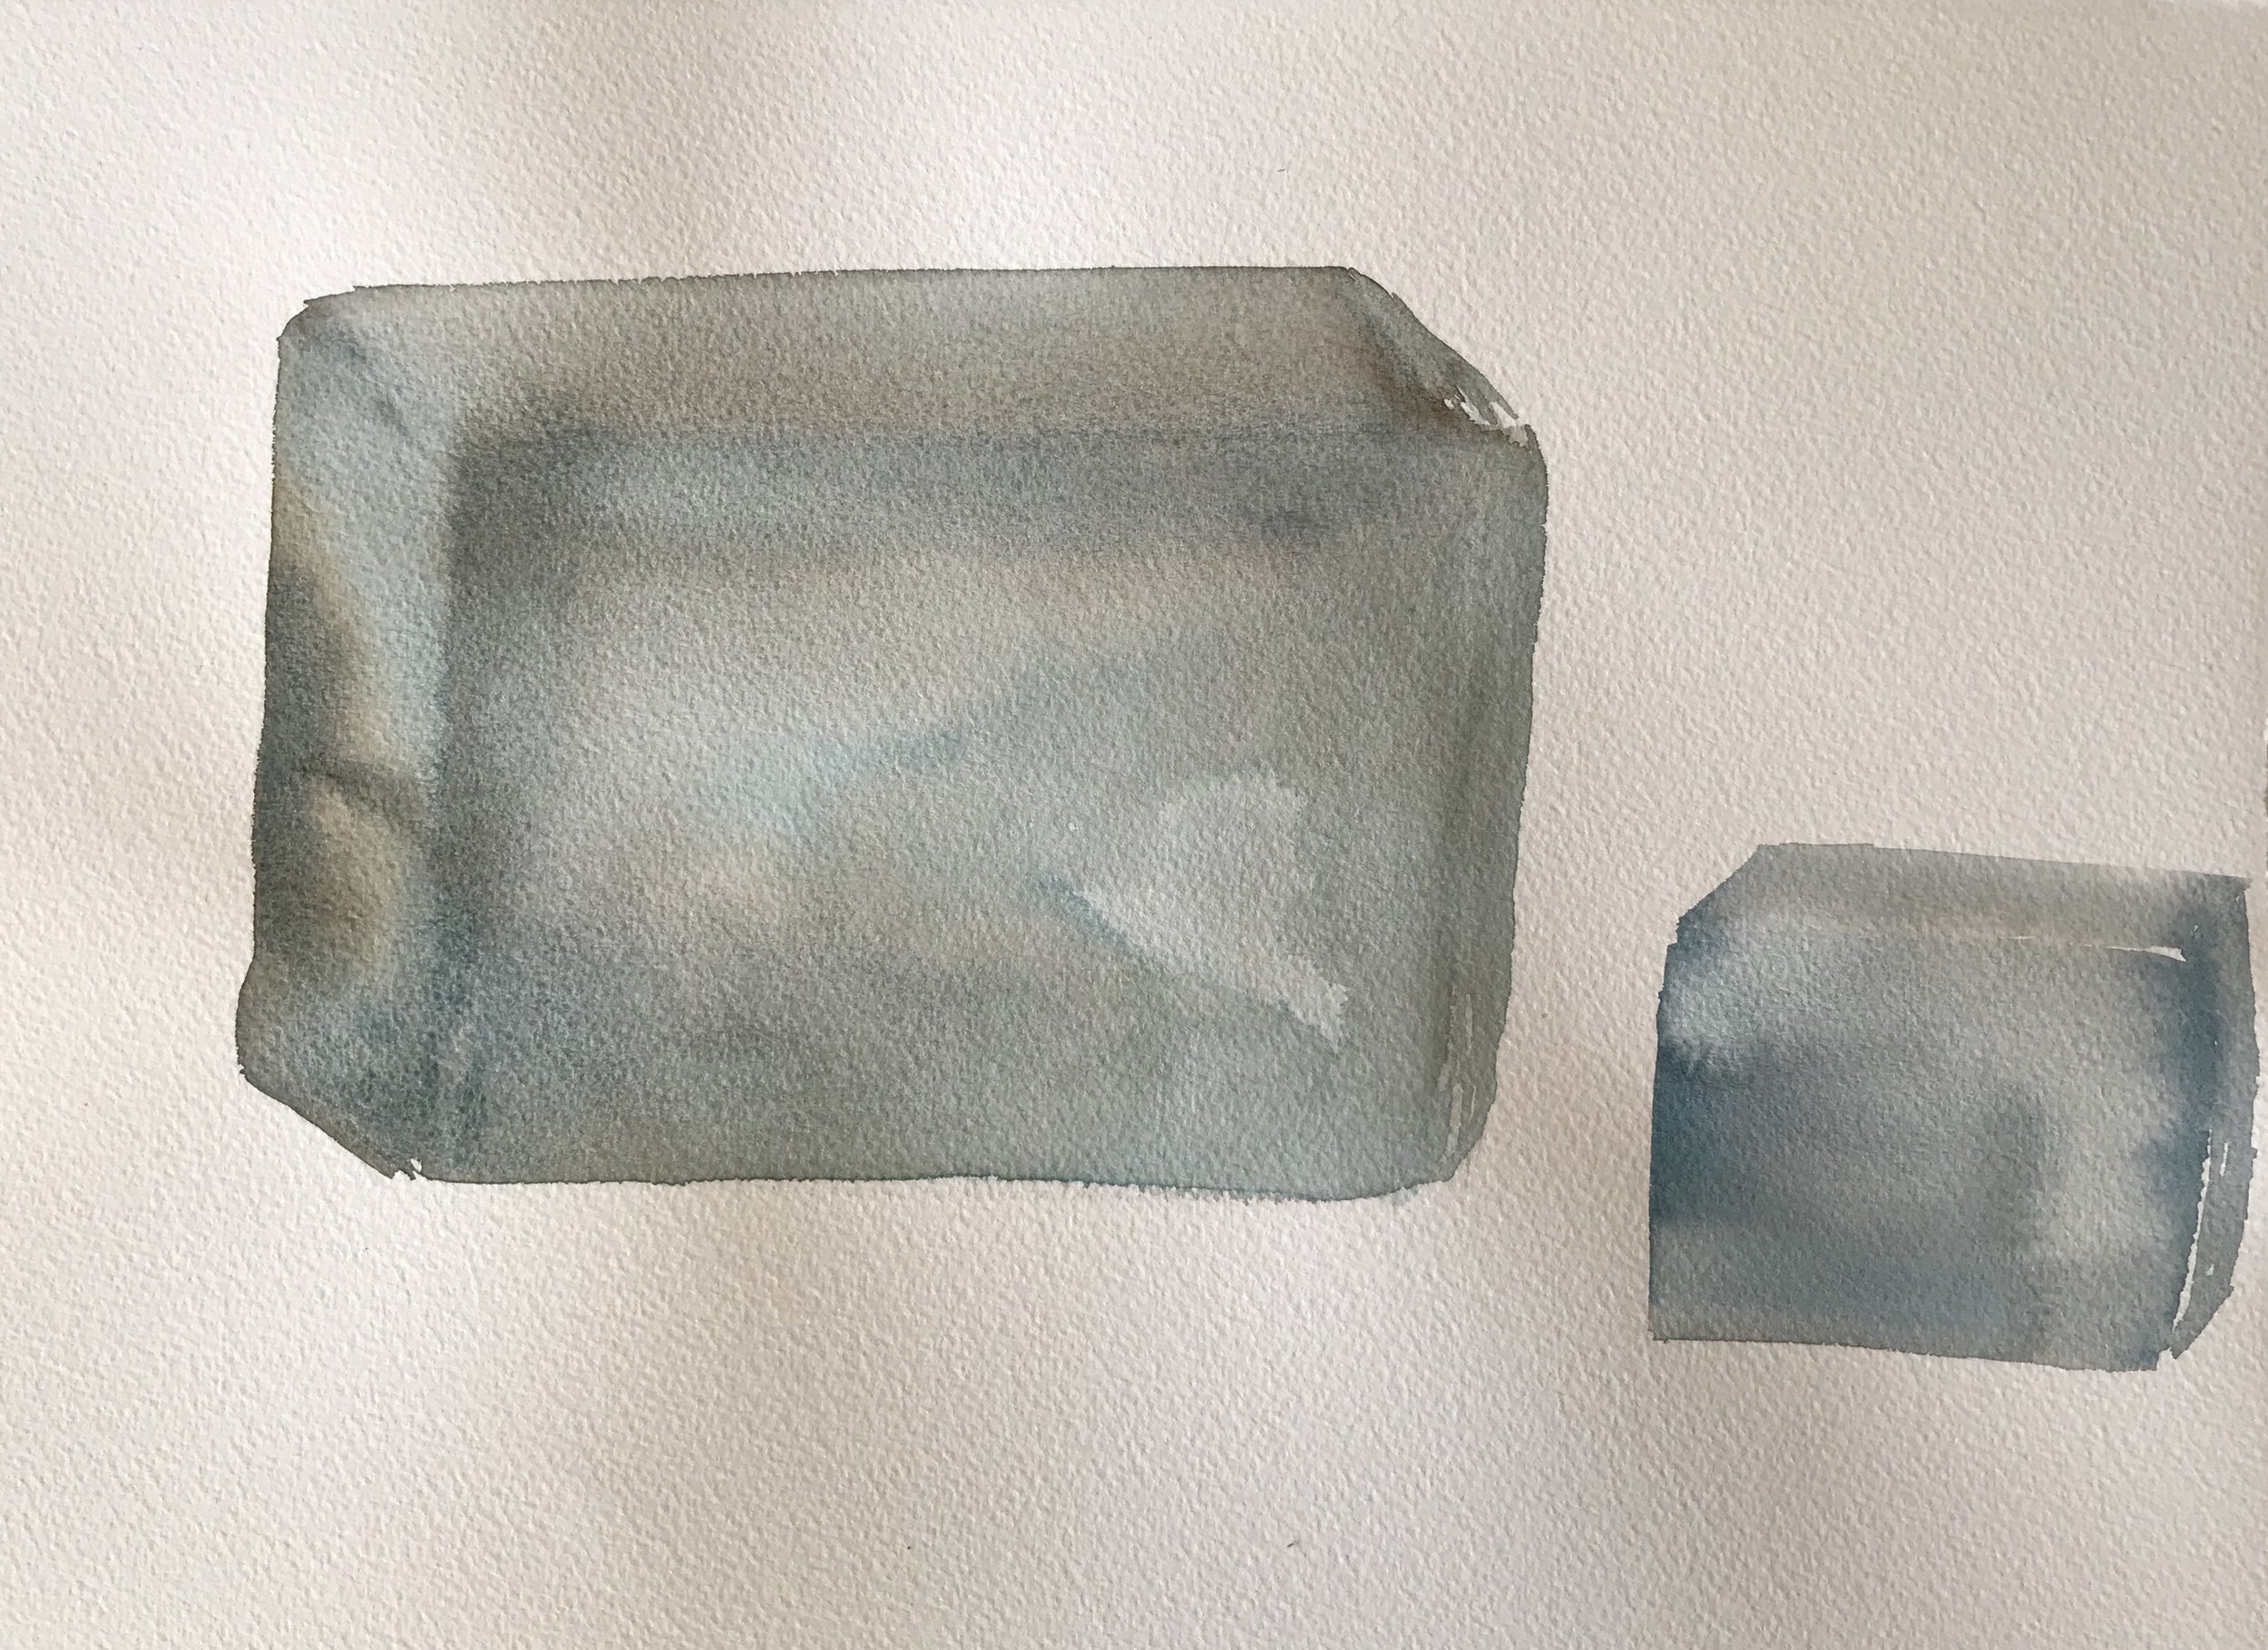 12 Ice blocks #3.jpg